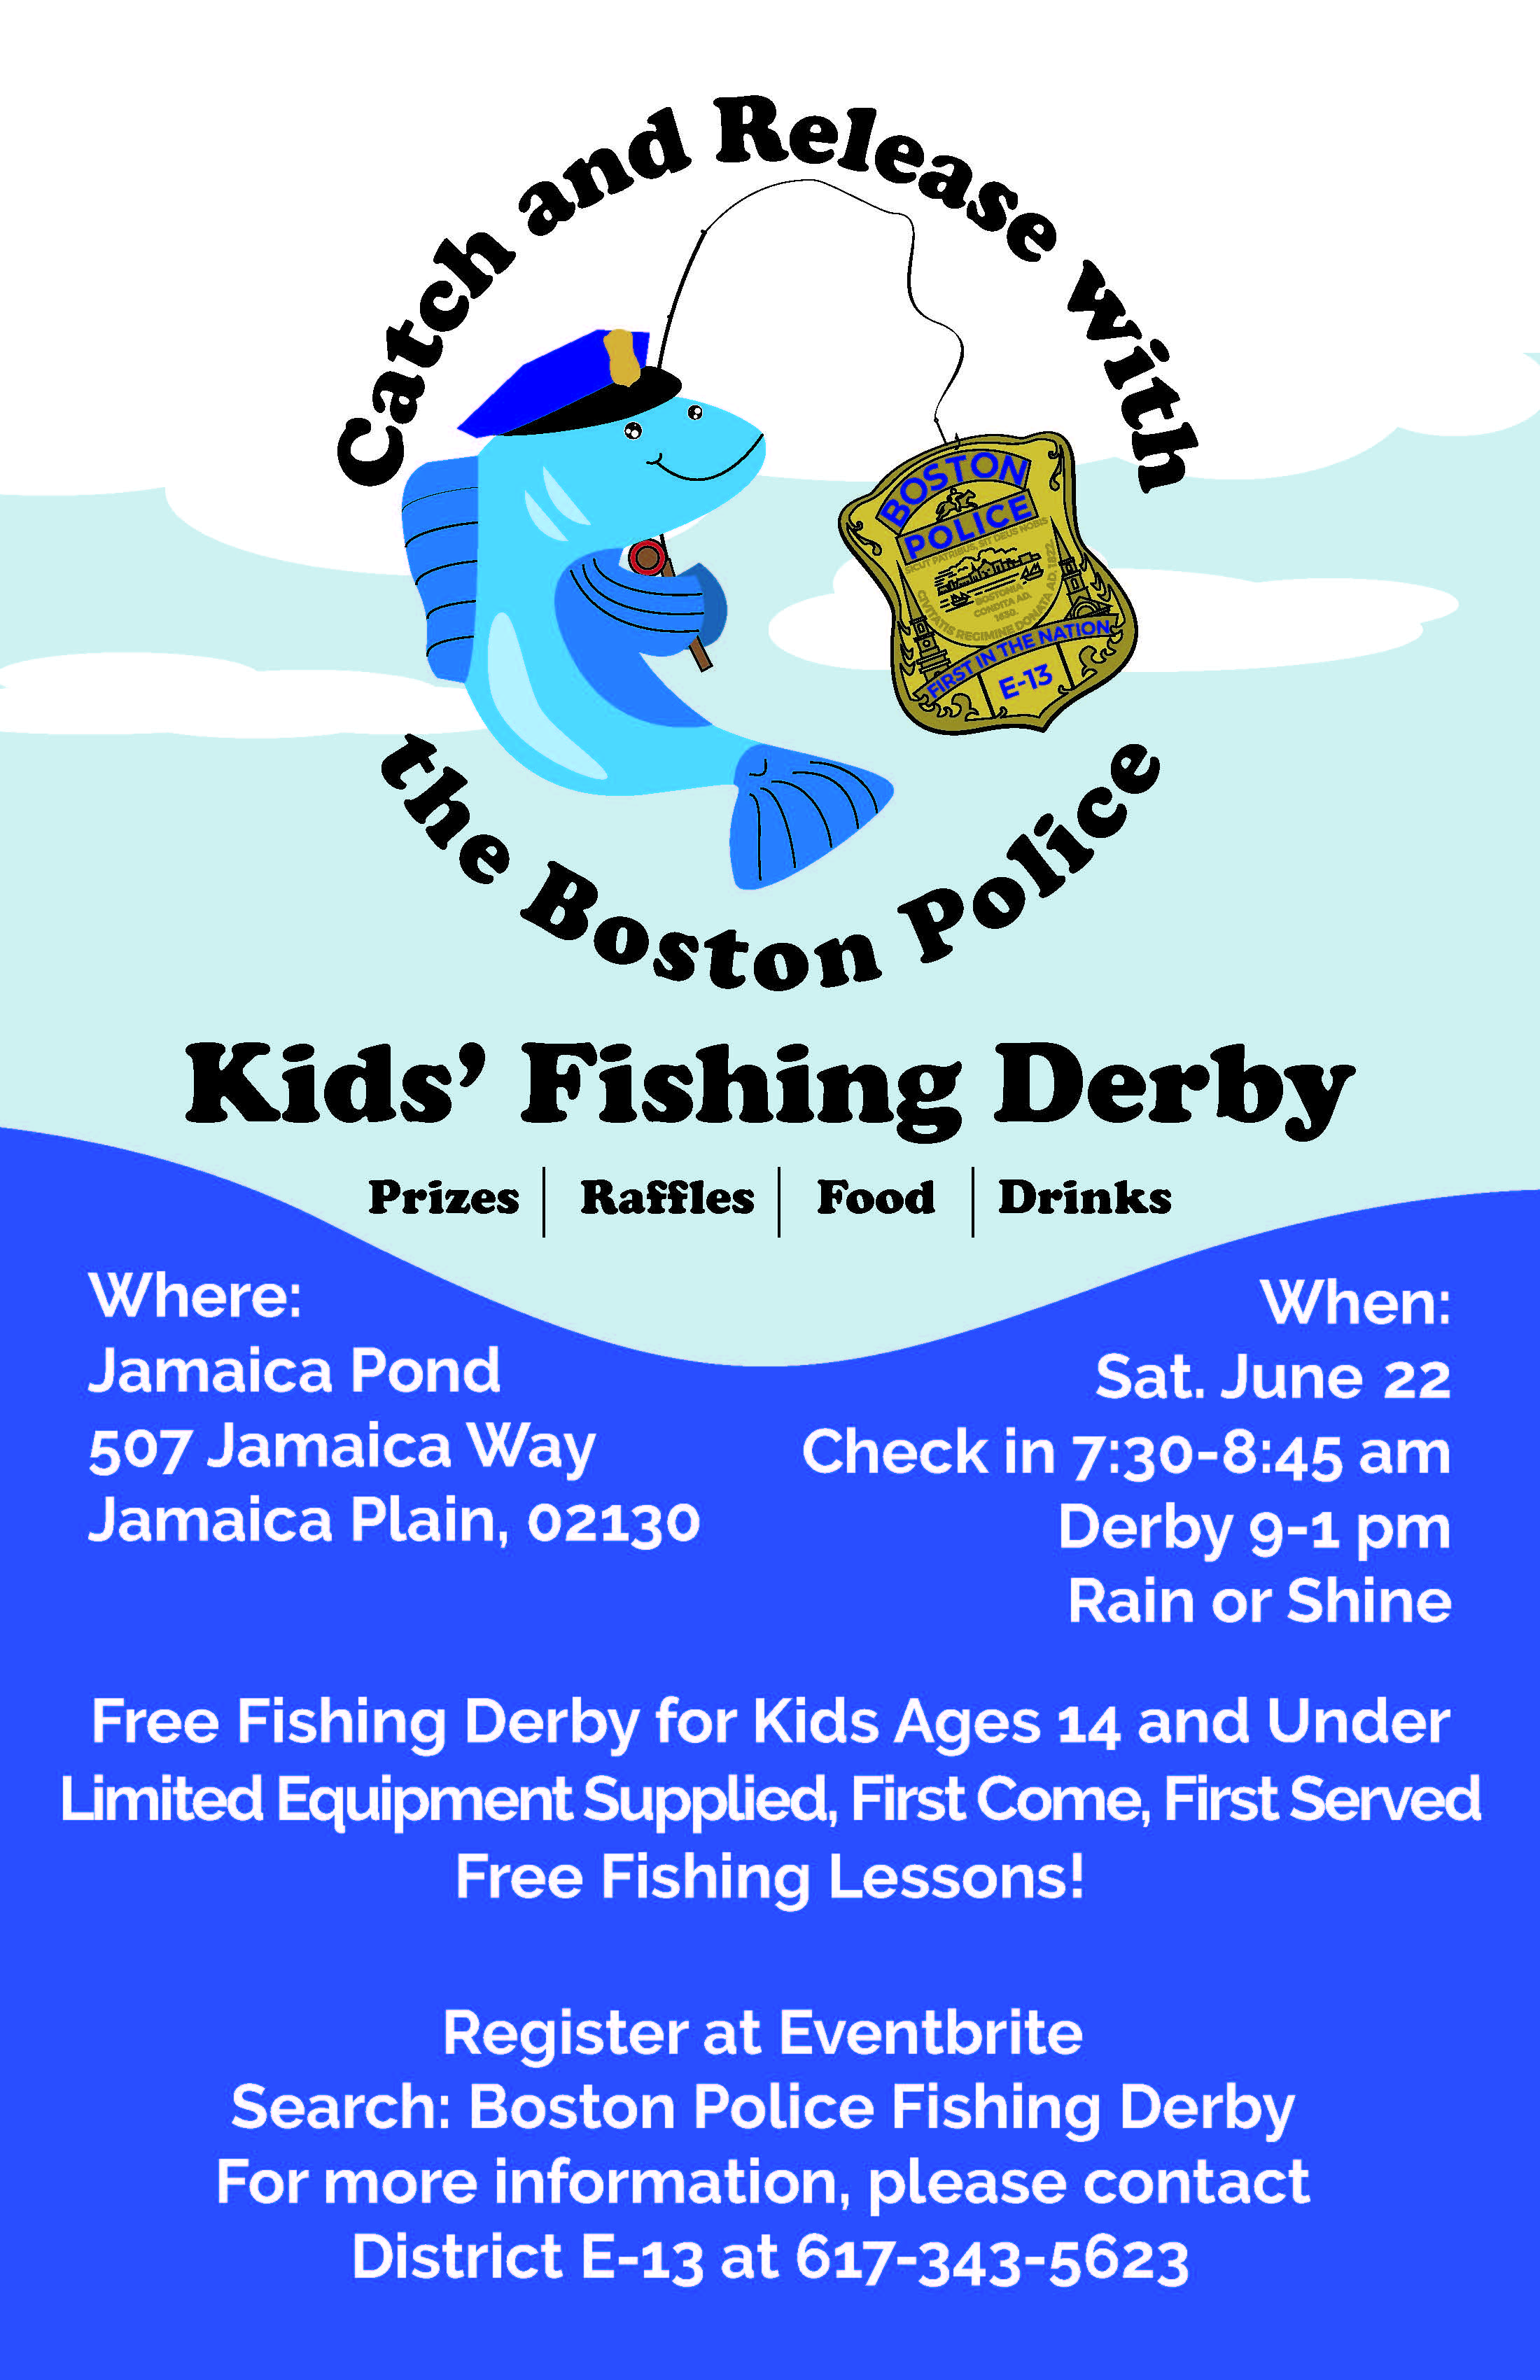 Fishing derby Poster.jpg